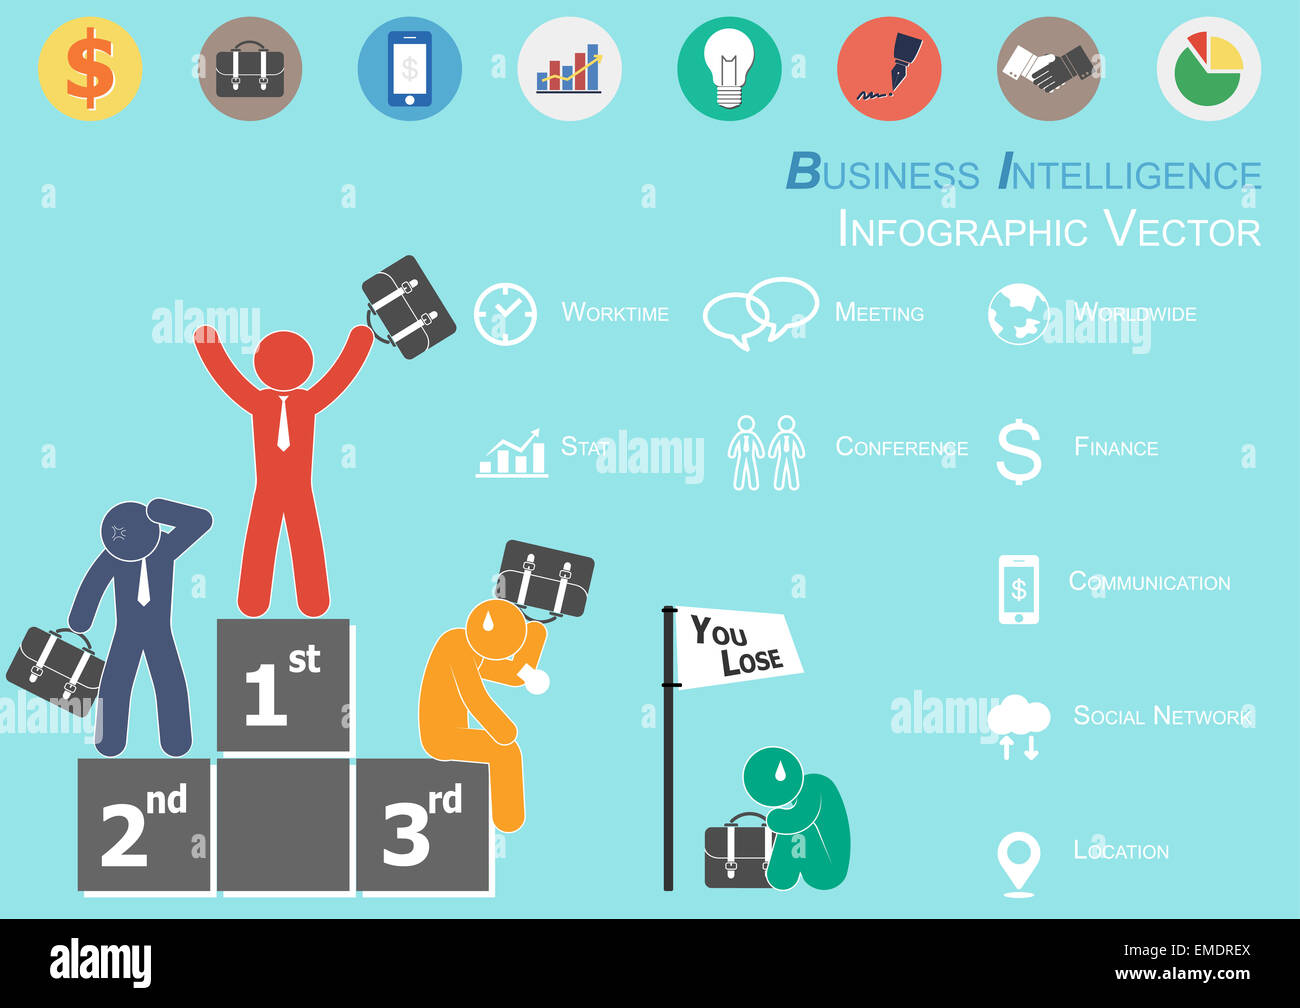 Infographic Of Business Intelligence ( The Winner Is Glad